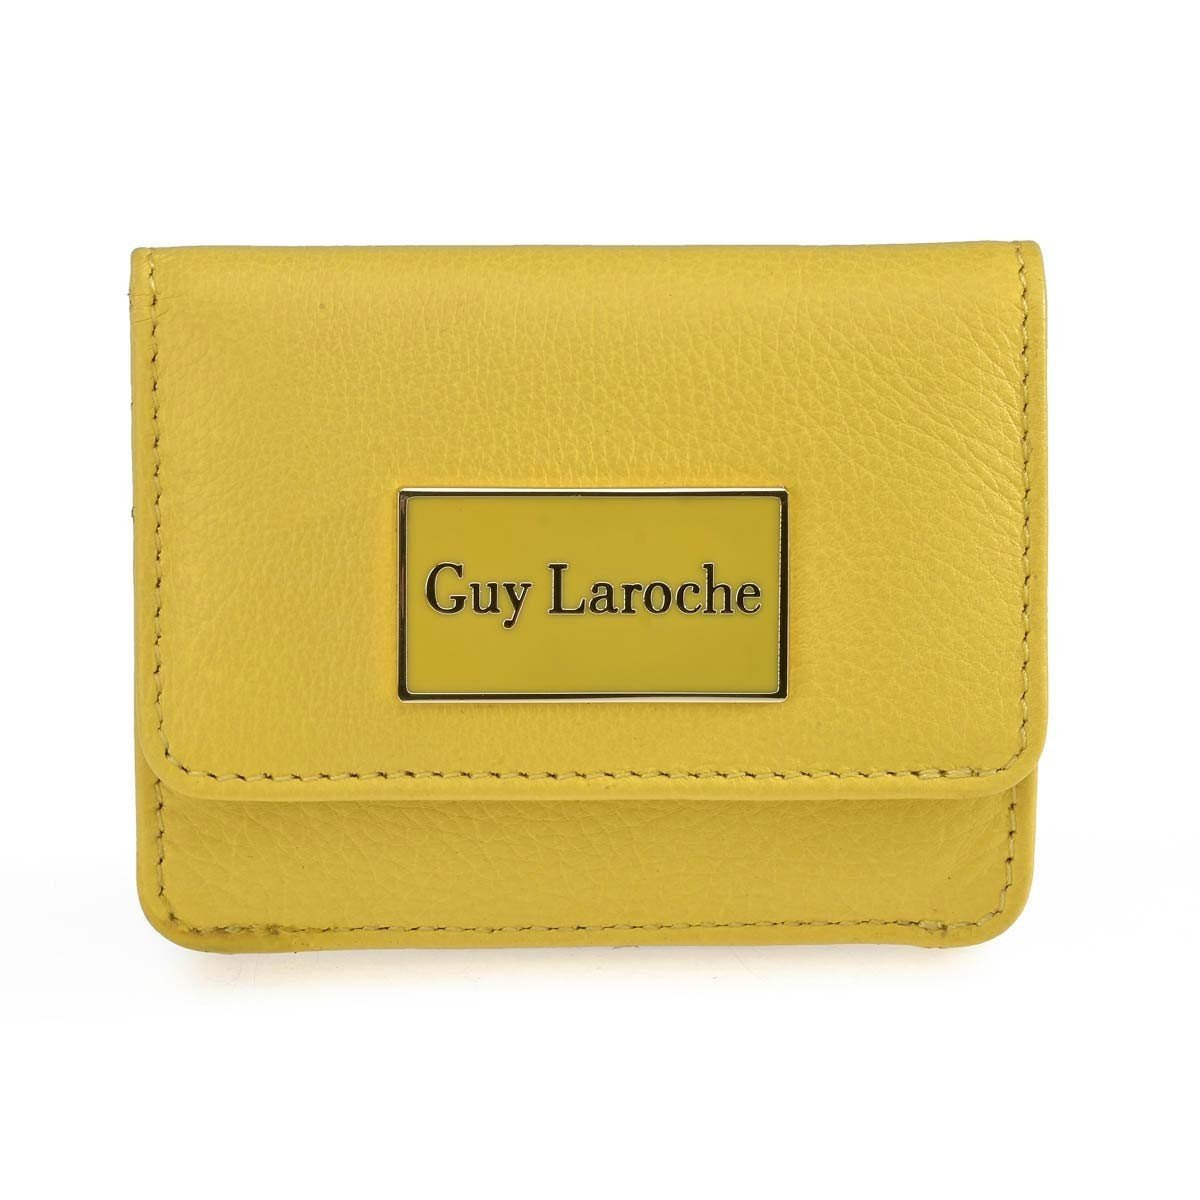 Monedero de mujer Guy Laoche 6756 (Color Amarillo): Amazon ...